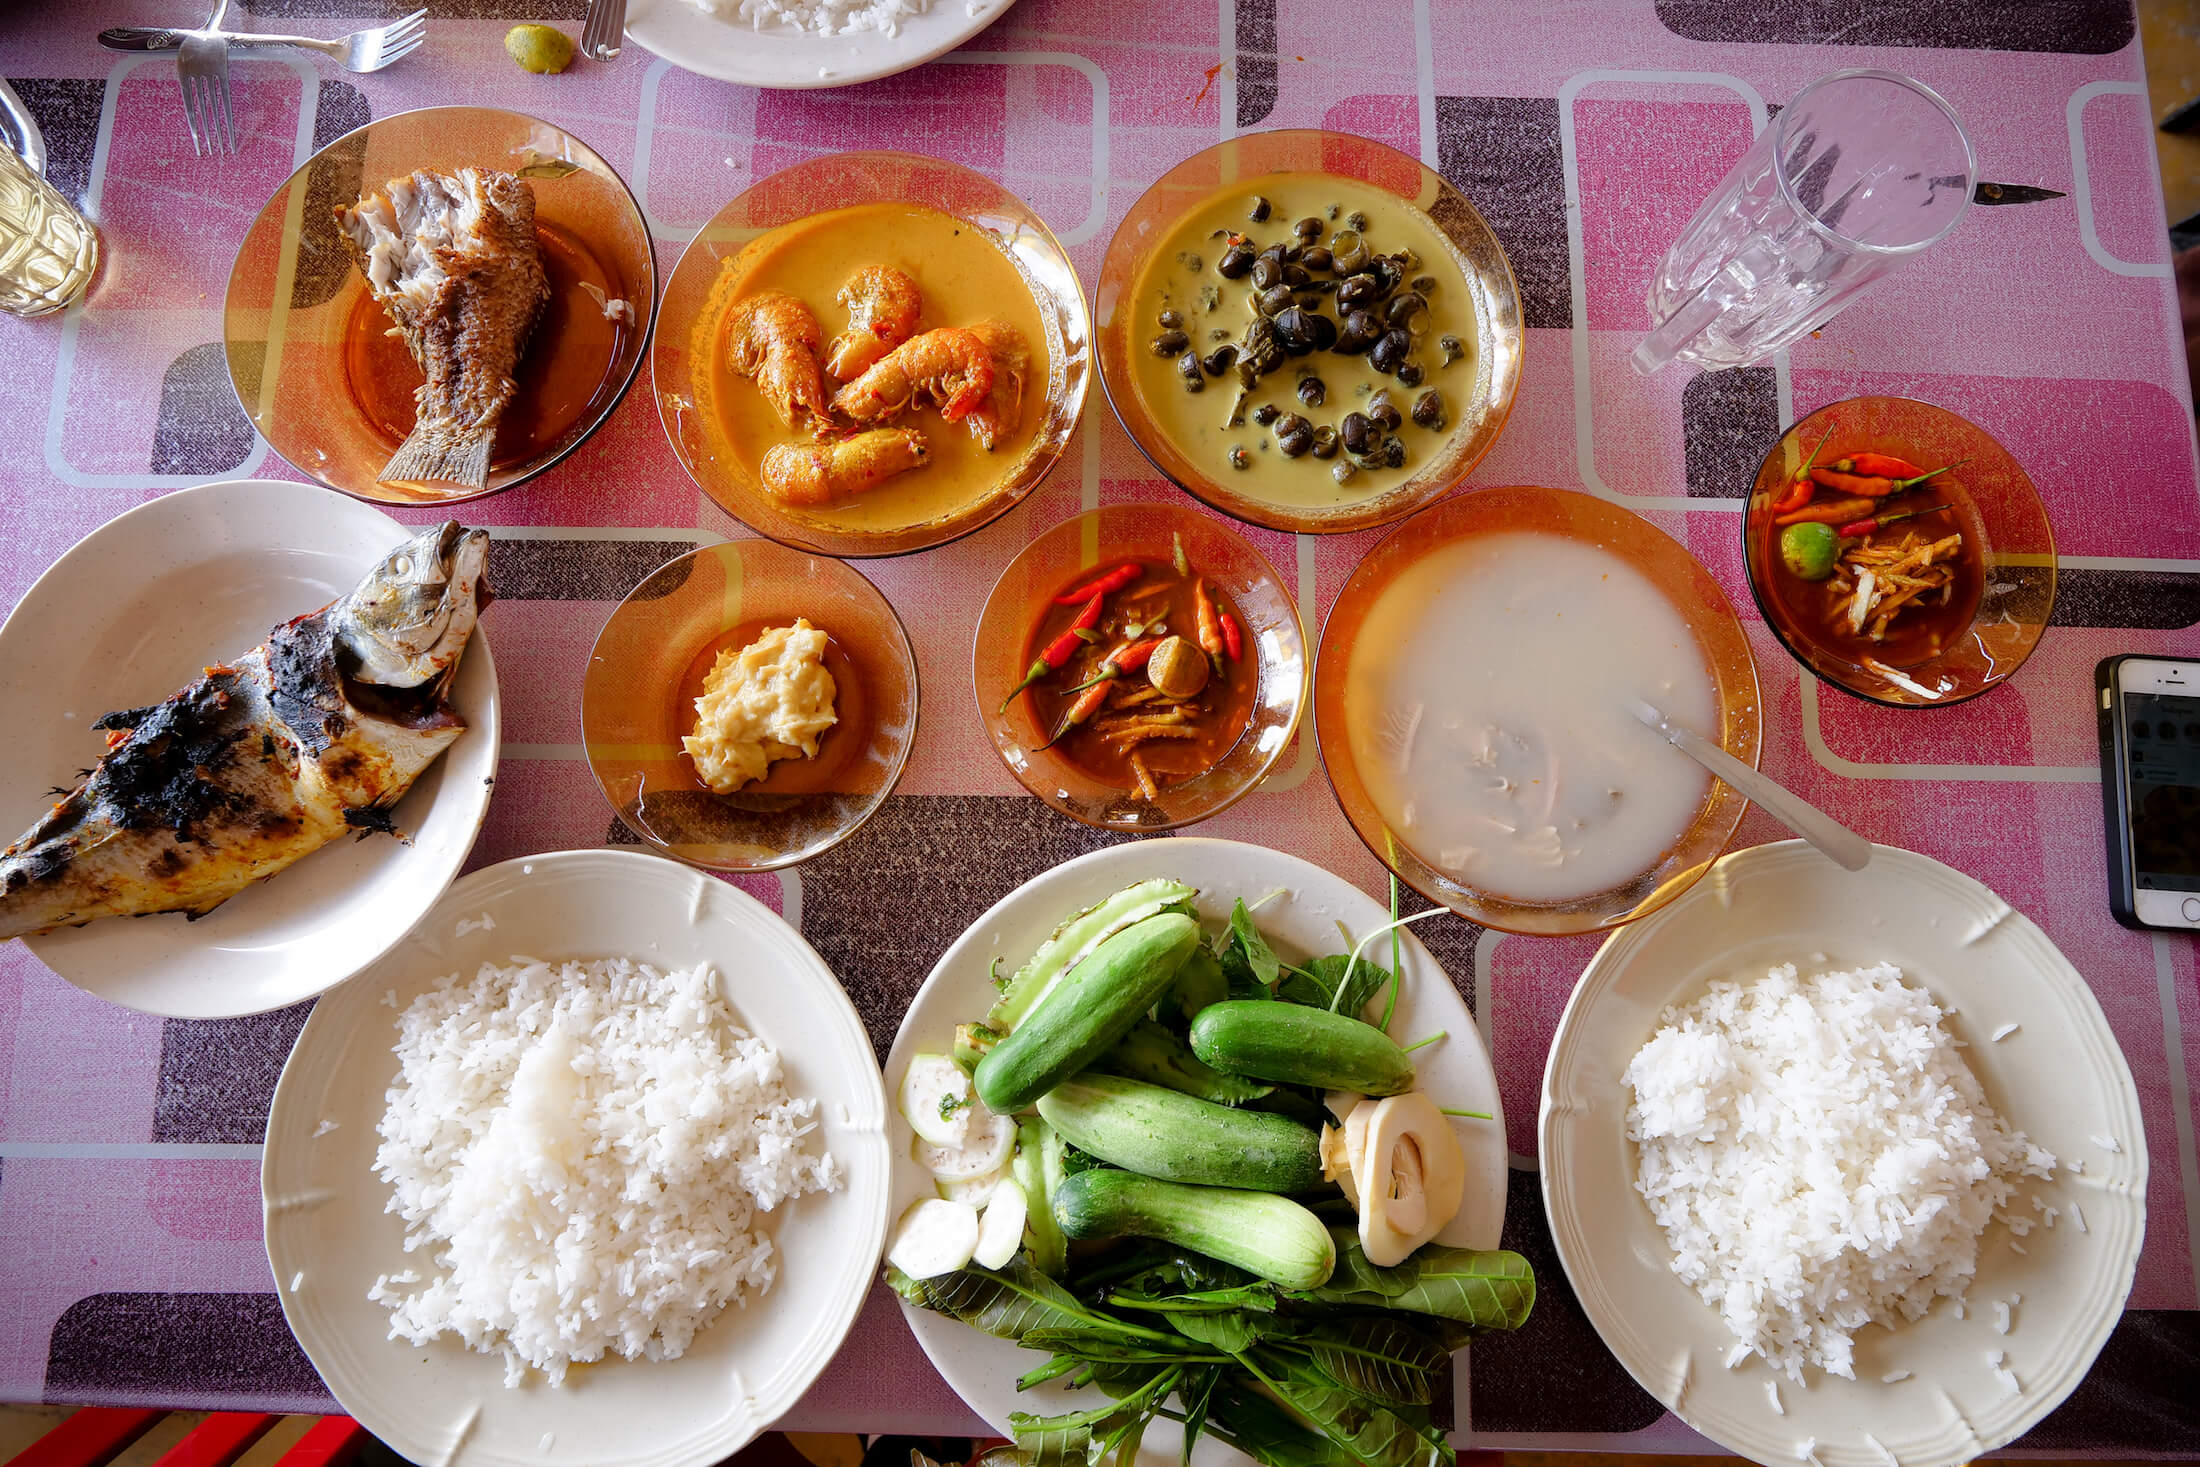 Nasi Ulam is a meal of rice with fresh vegetables, but there are so many side dishes available at D'Umi Nasi Ulam that you may need to clear your schedule for an entire day when you visit